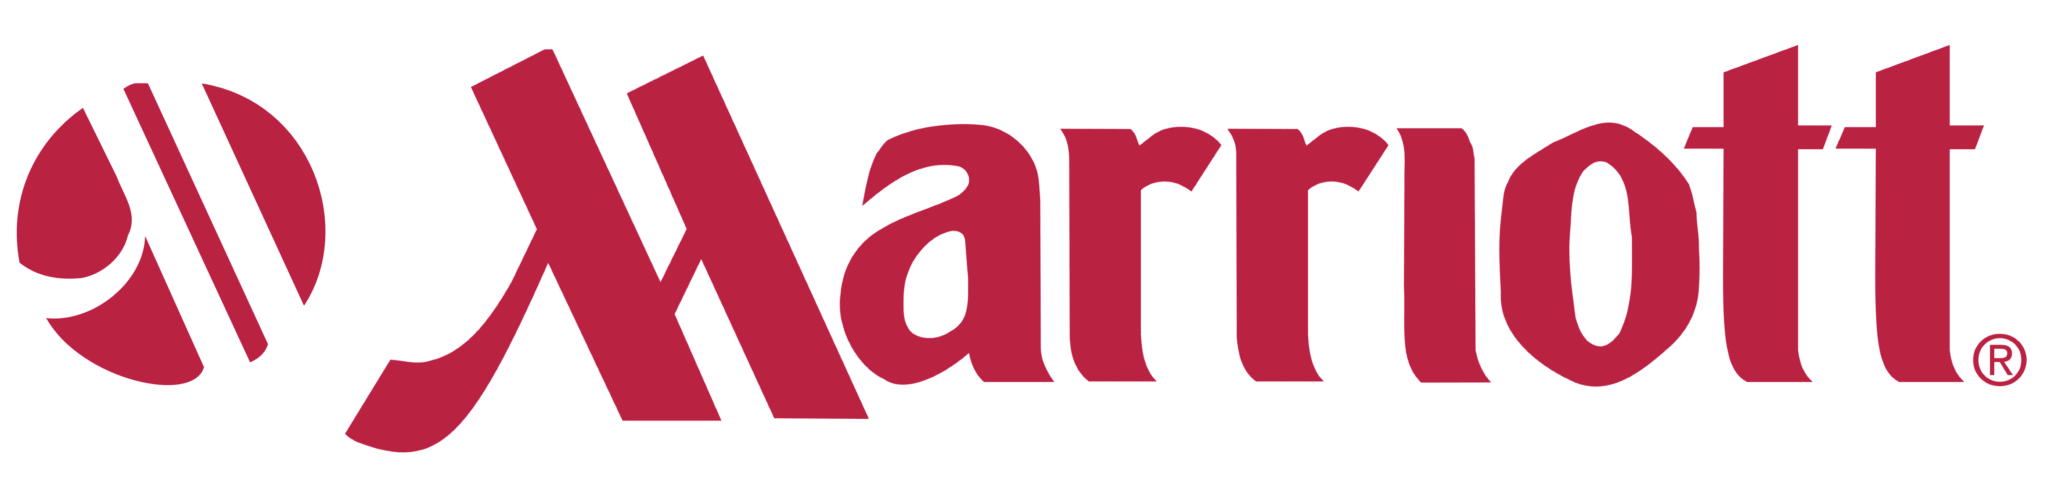 Marriott_logo_horizontal